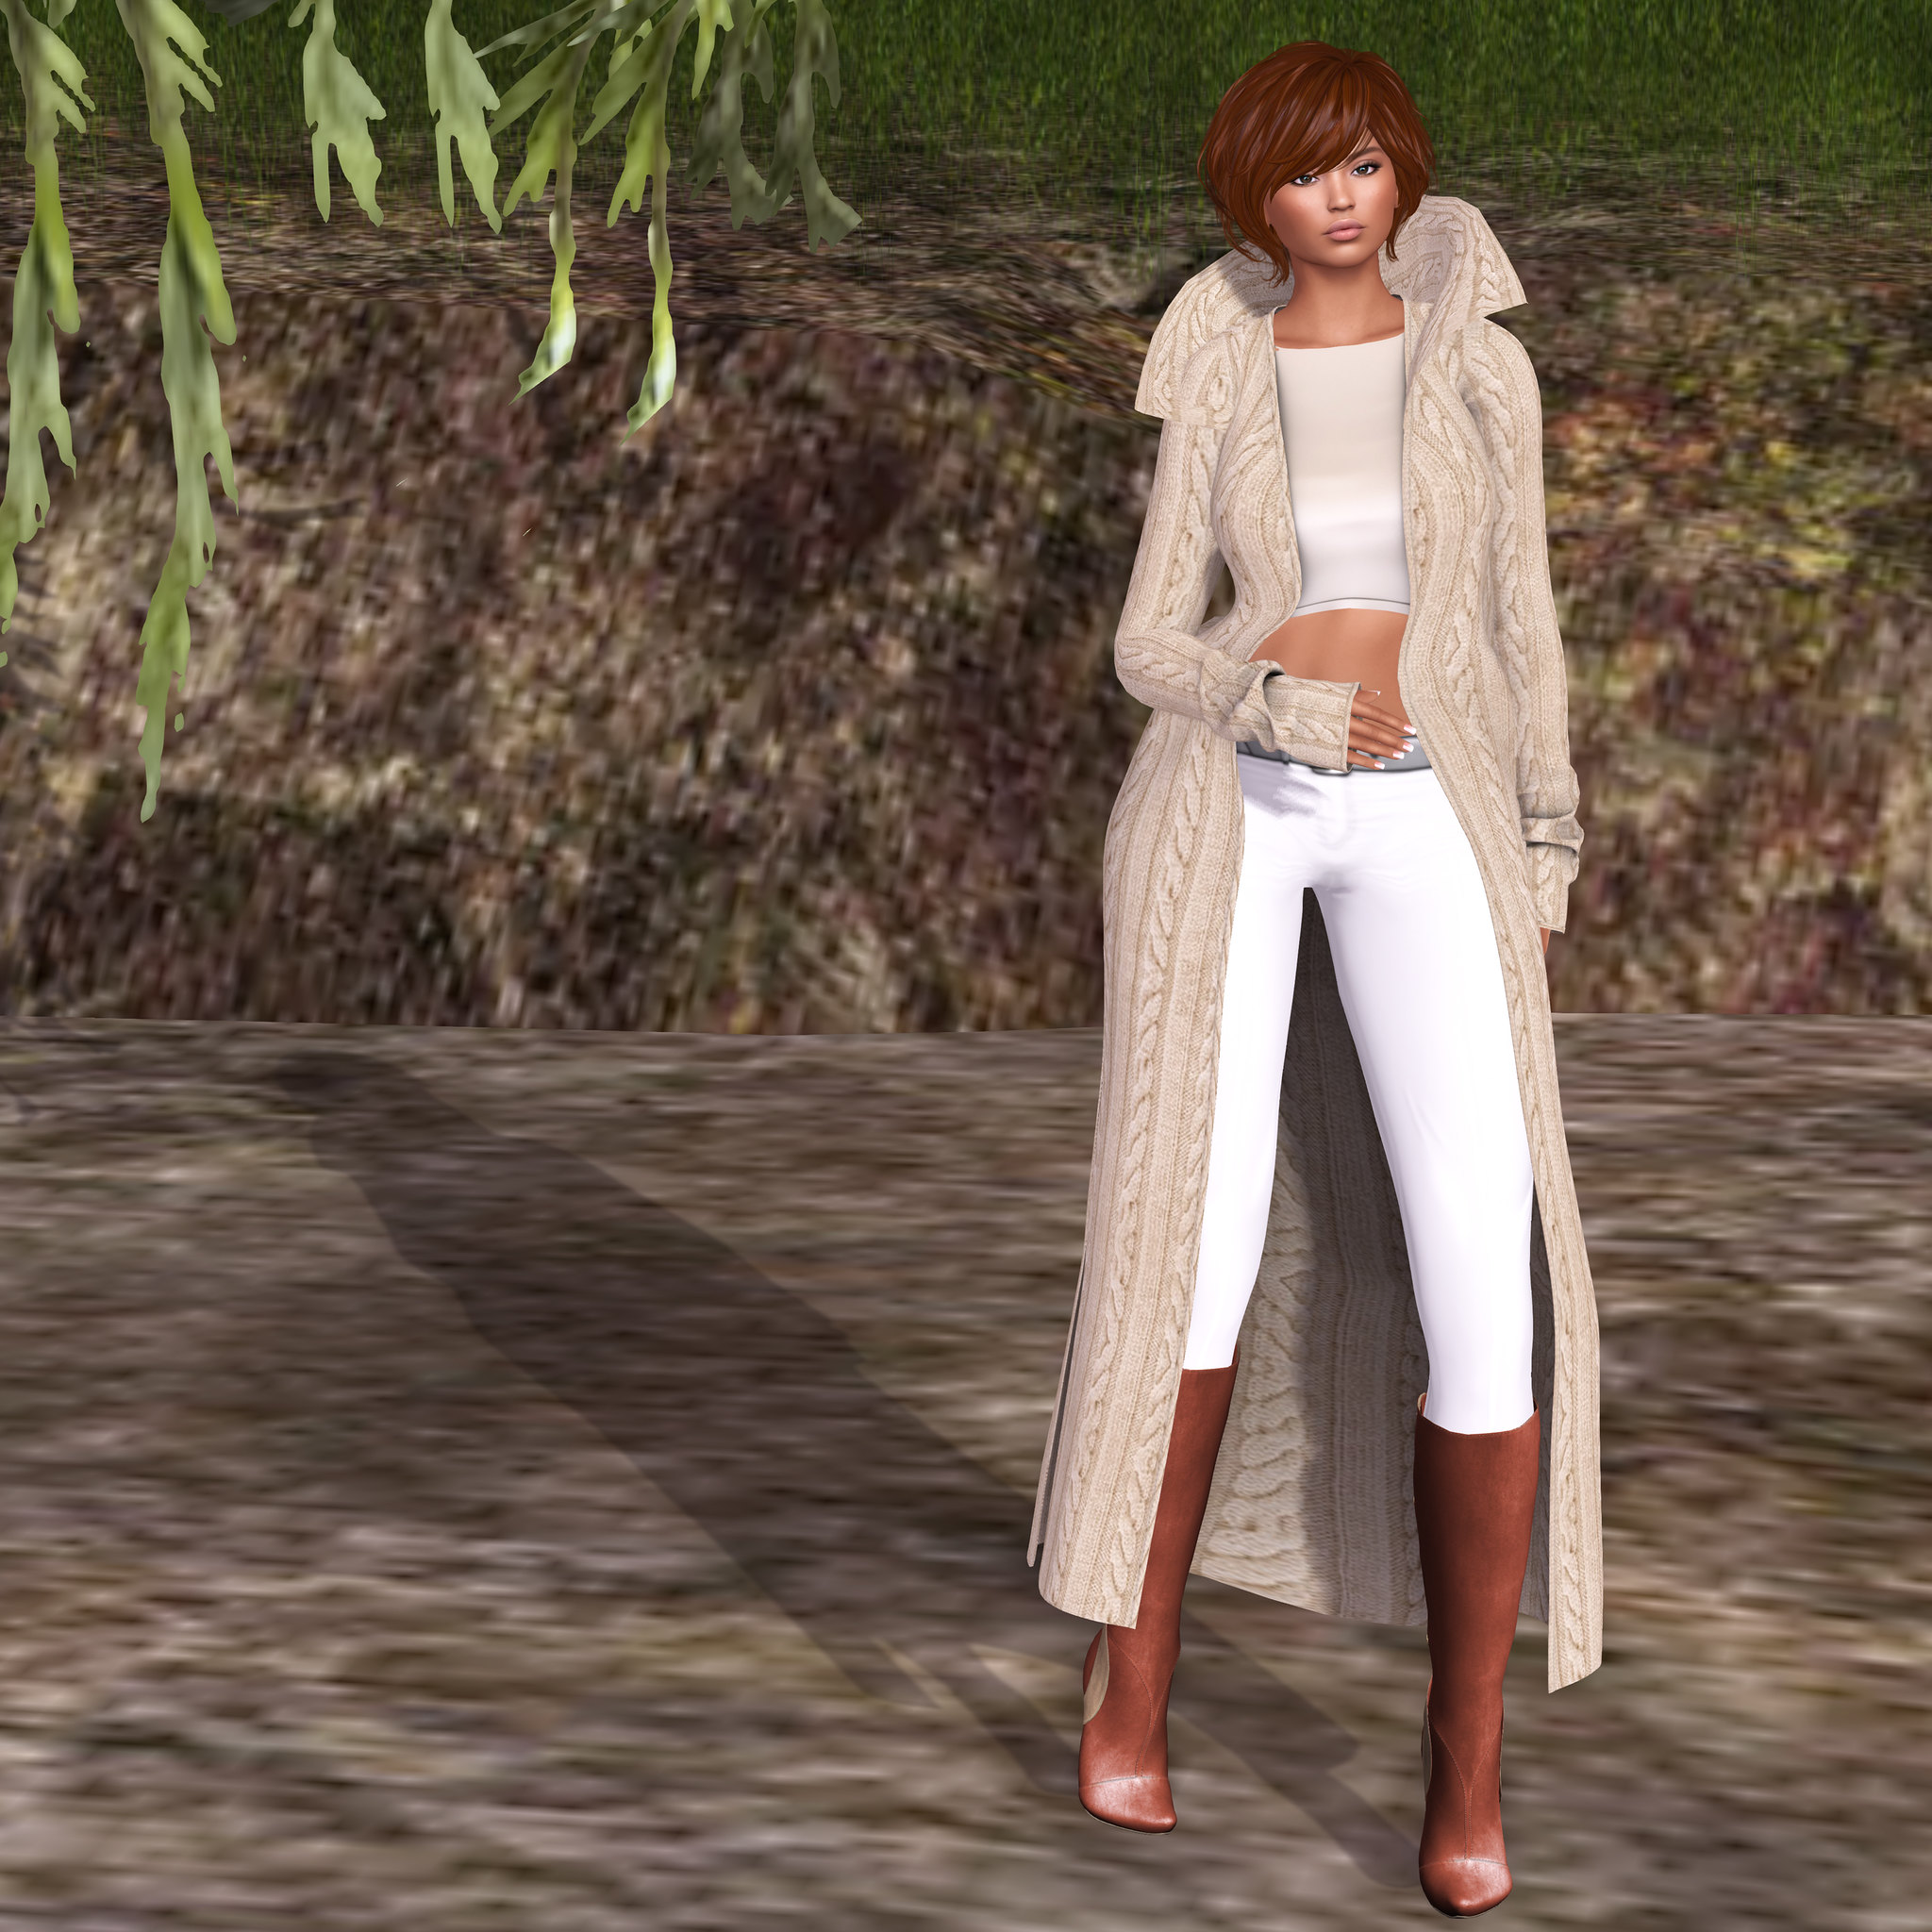 Maggie outfit, Sascha's Designs